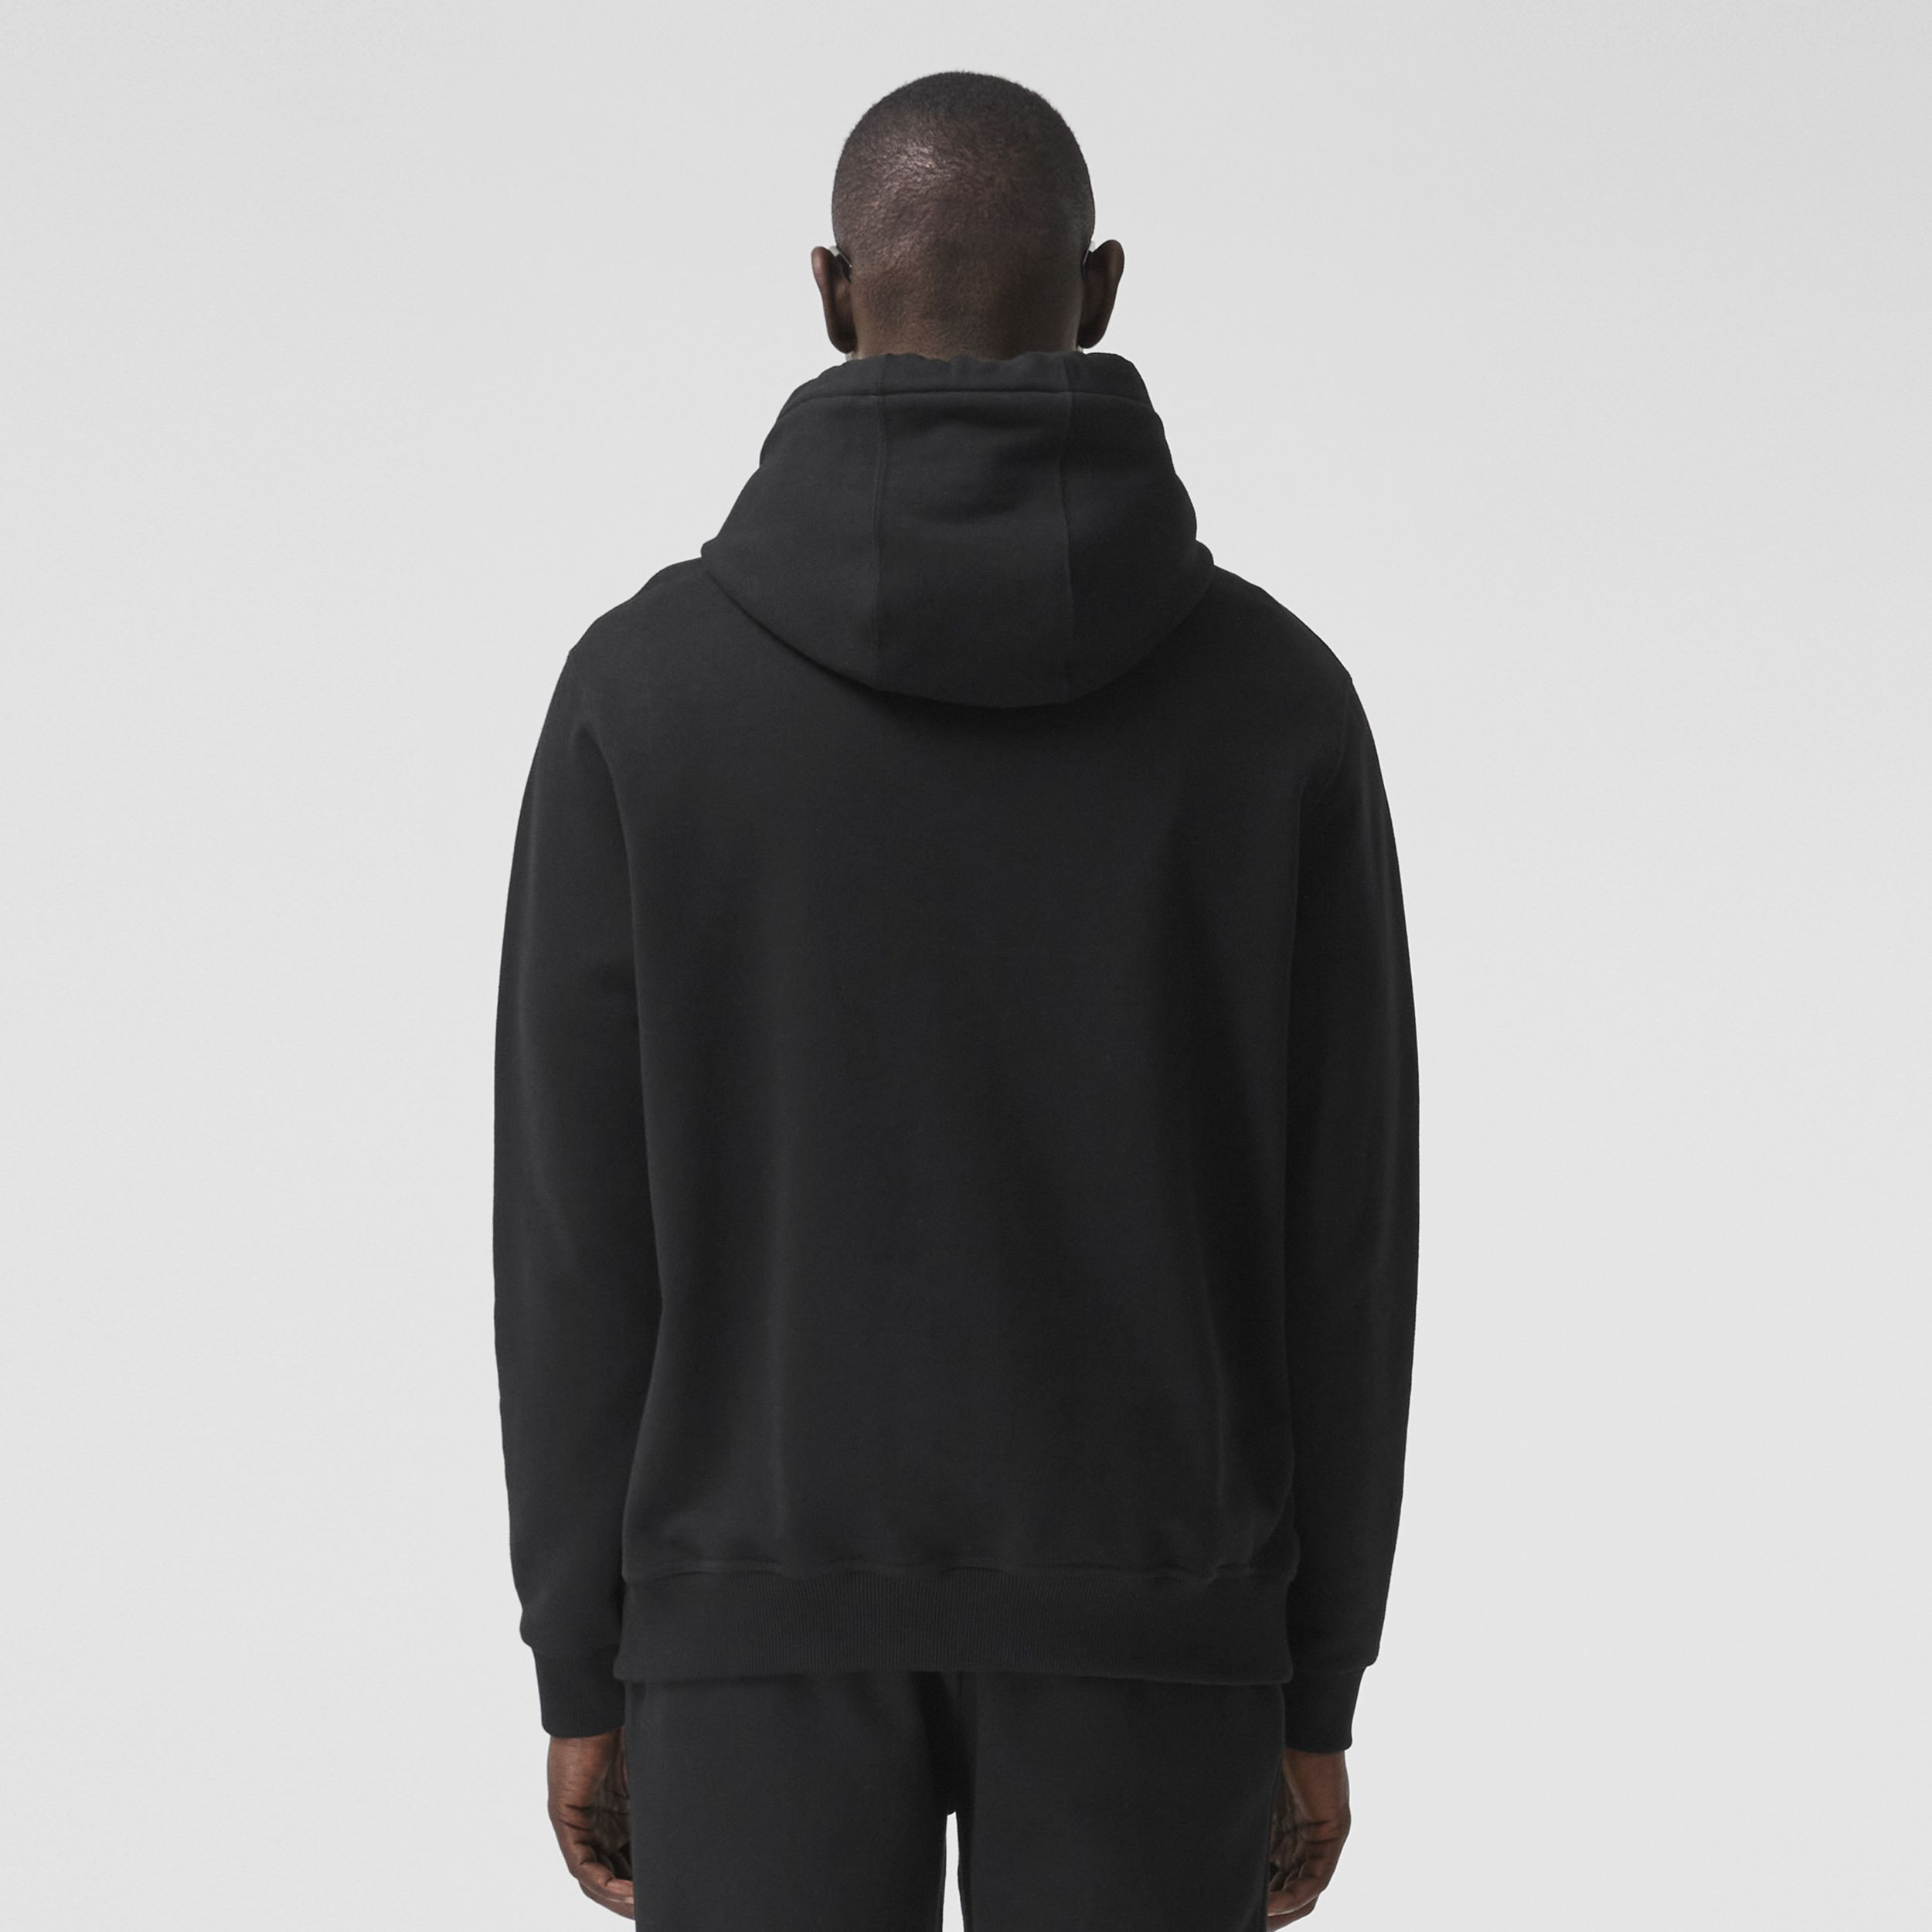 Monogram Motif Cotton Hoodie in Black - Men | Burberry - 3